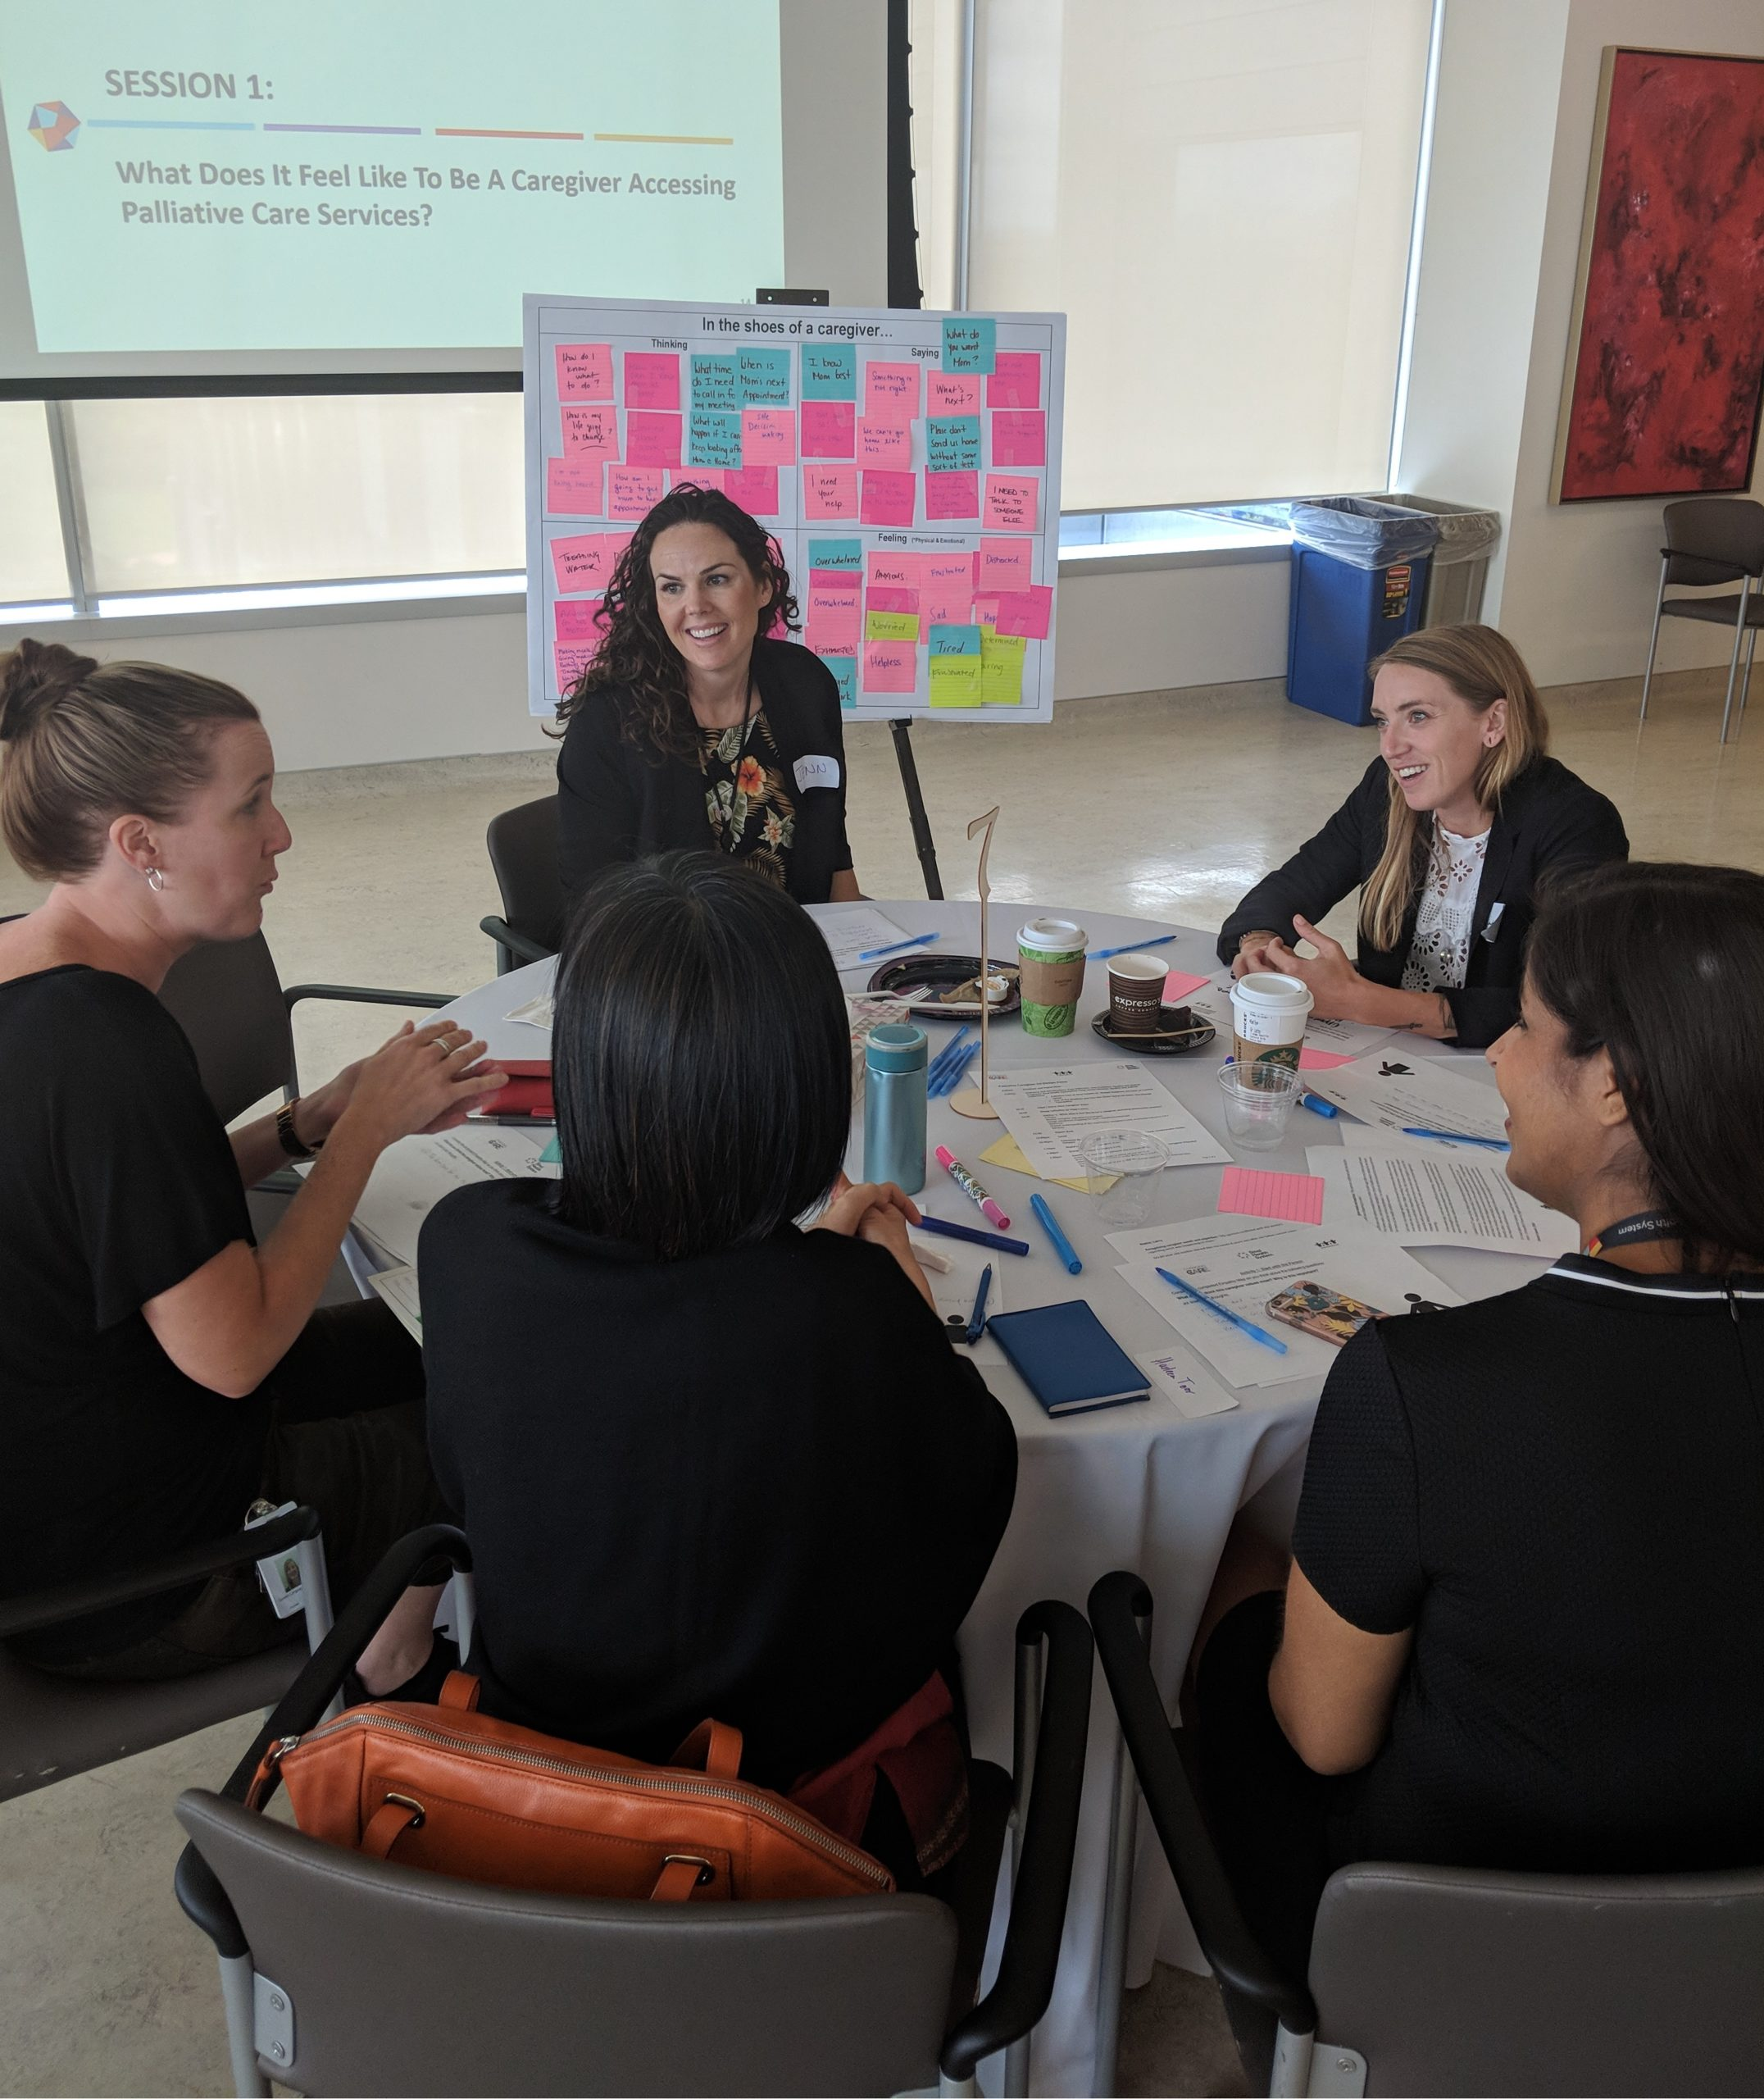 The Power of Co-Design in Cultivating Change